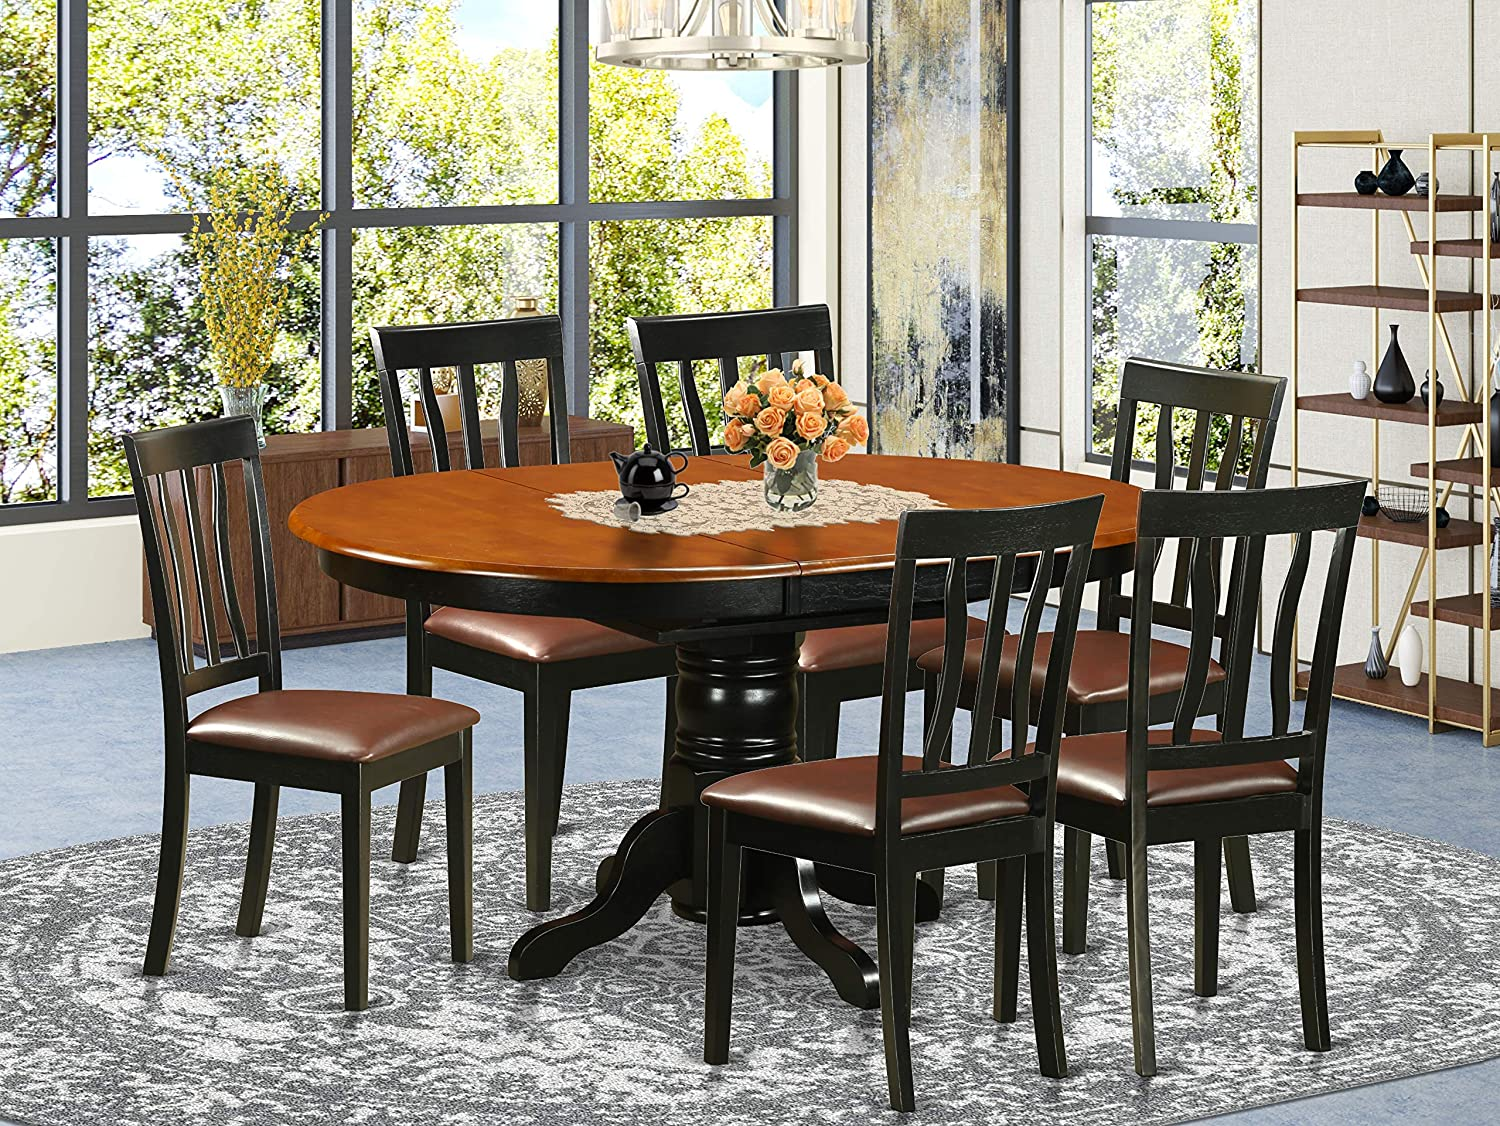 Amazon Com East West Furniture 7 Pieces Nook Kitchen Table Set Pu Leather Wood Chairs Black And Cherry Finish Hardwood Butterfly Leaf Pedestal Modern Dining Table And Frame Furniture Decor